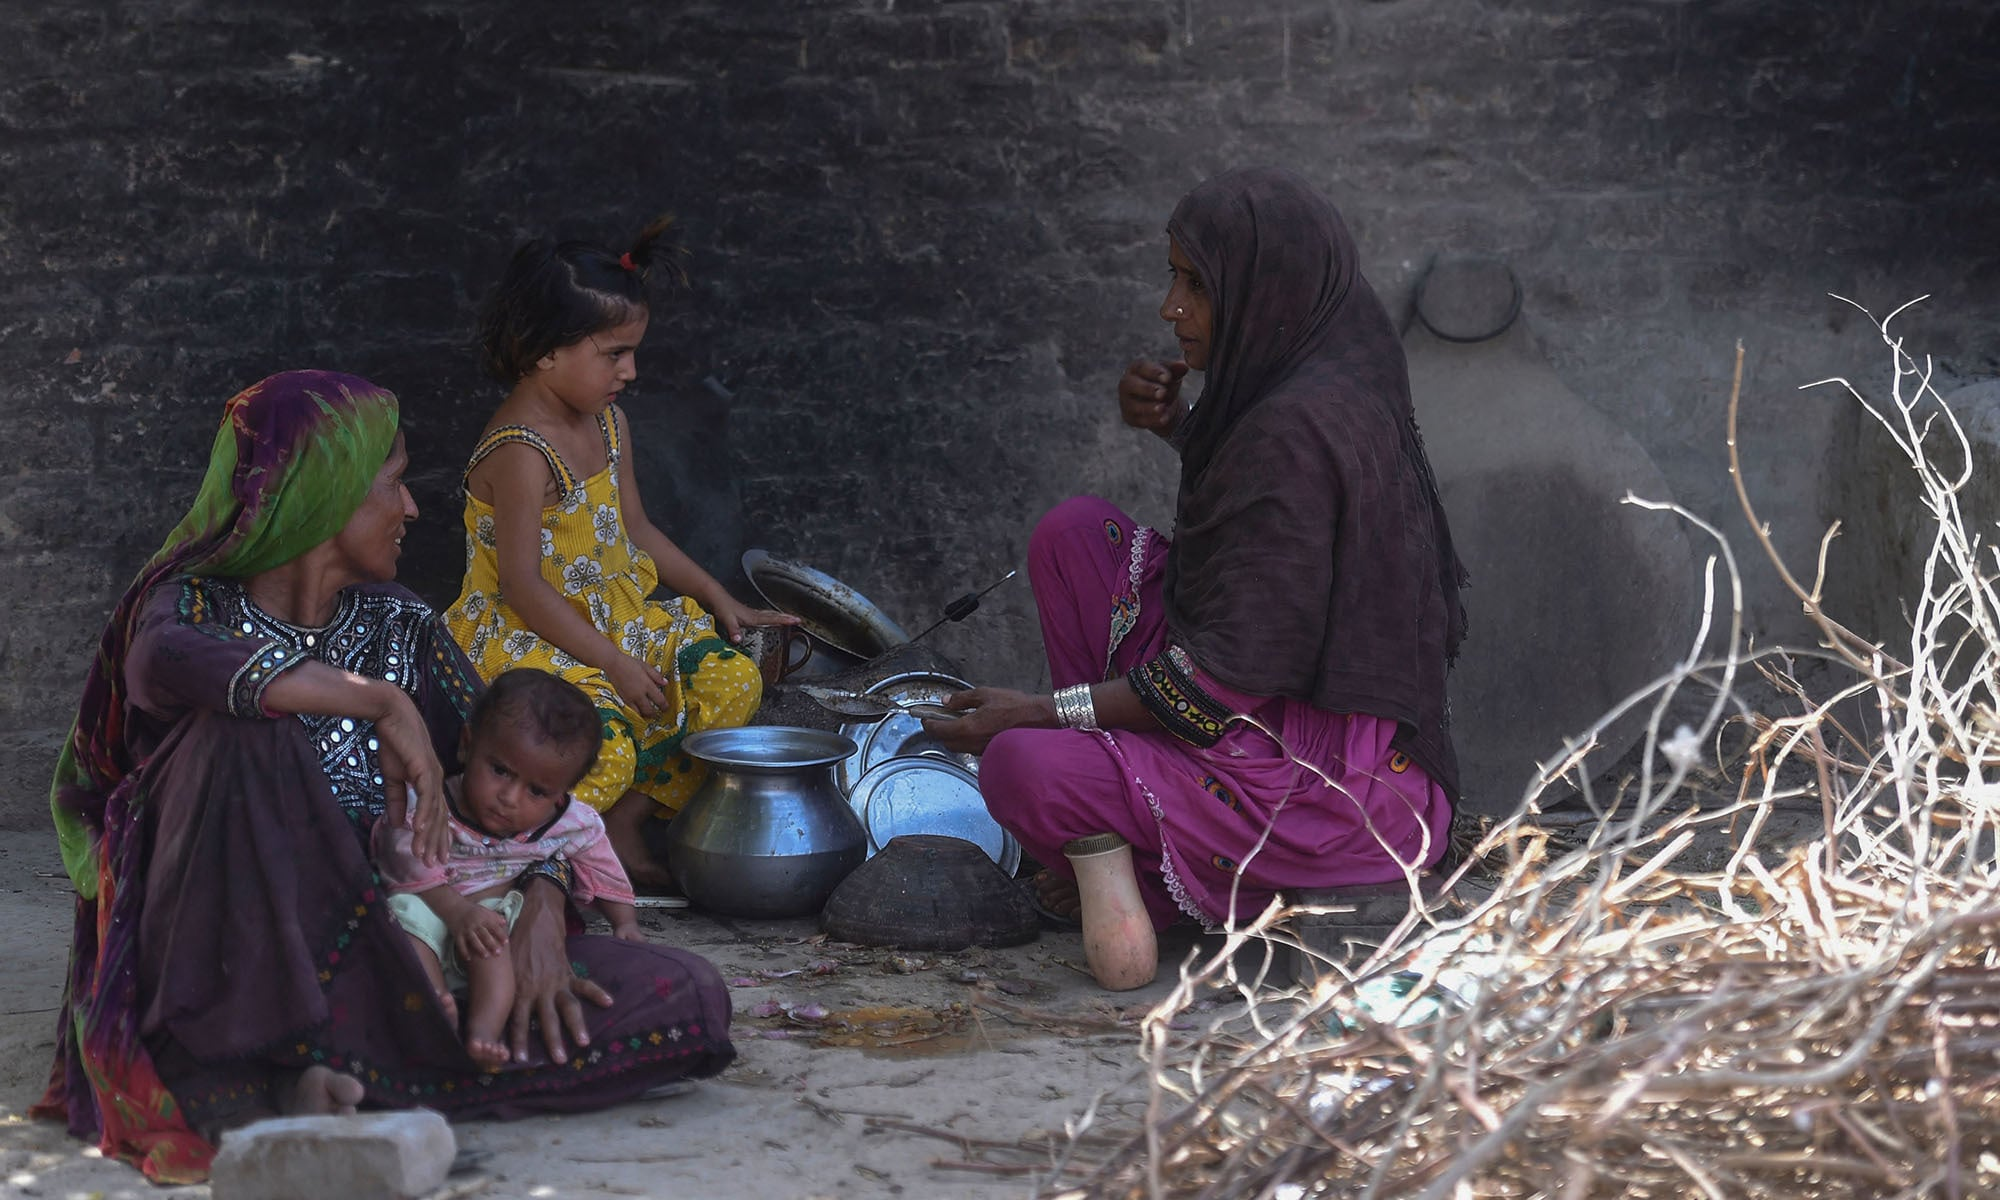 Habiba Mai (R), wife of school teacher Ali Nawaz, who helped with the rescue efforts of the train collision, prepares tea for her family at her home near the train accident site in Daharki, Sindh. —AFP